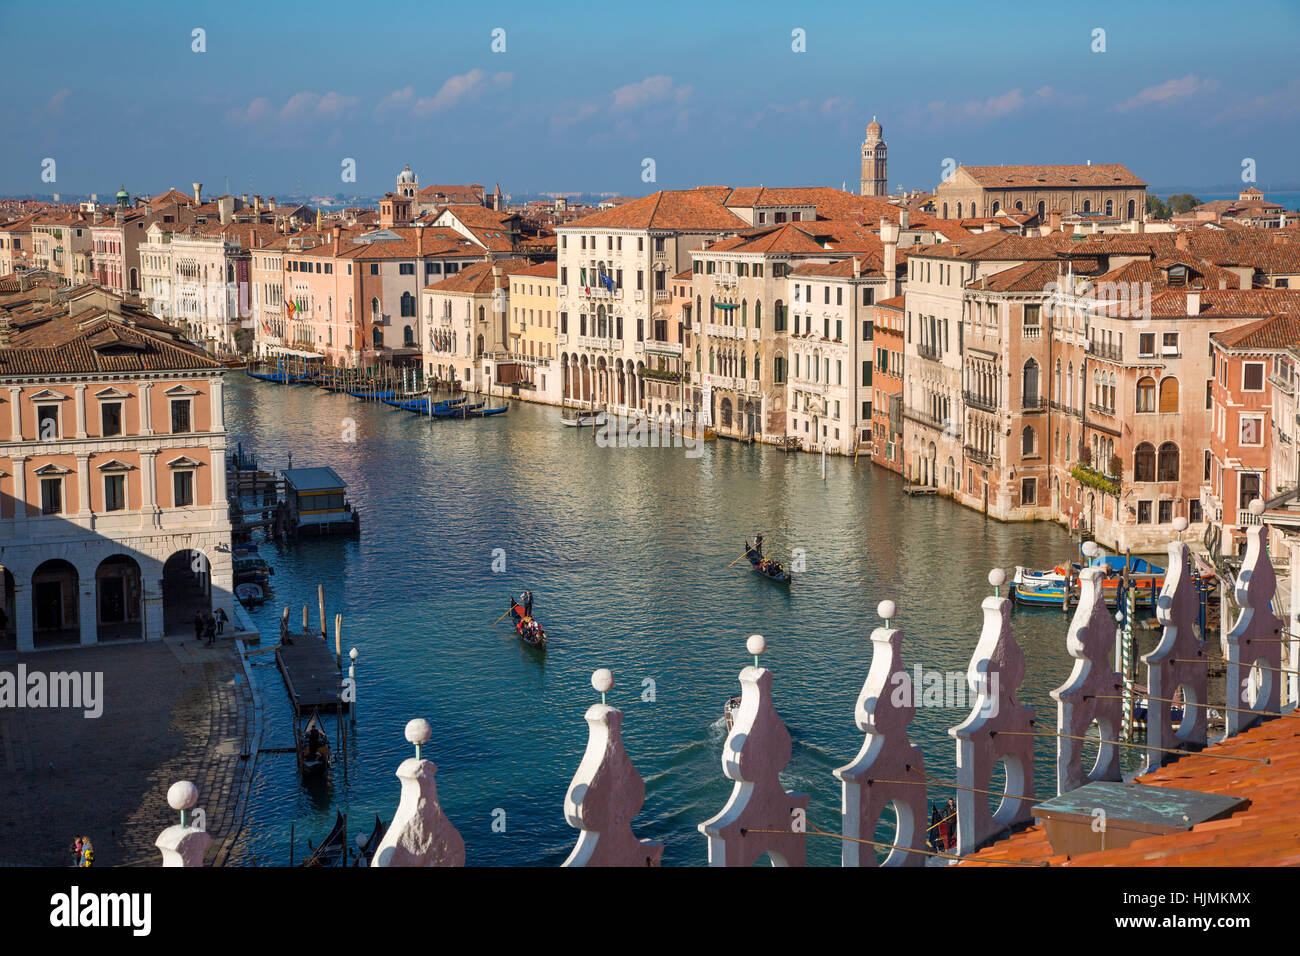 Rooftop view of the Grand Canal from the Fondaco dei Tedeschi (b. 1228) - now a department store nr Rialto Bridge, - Stock Image